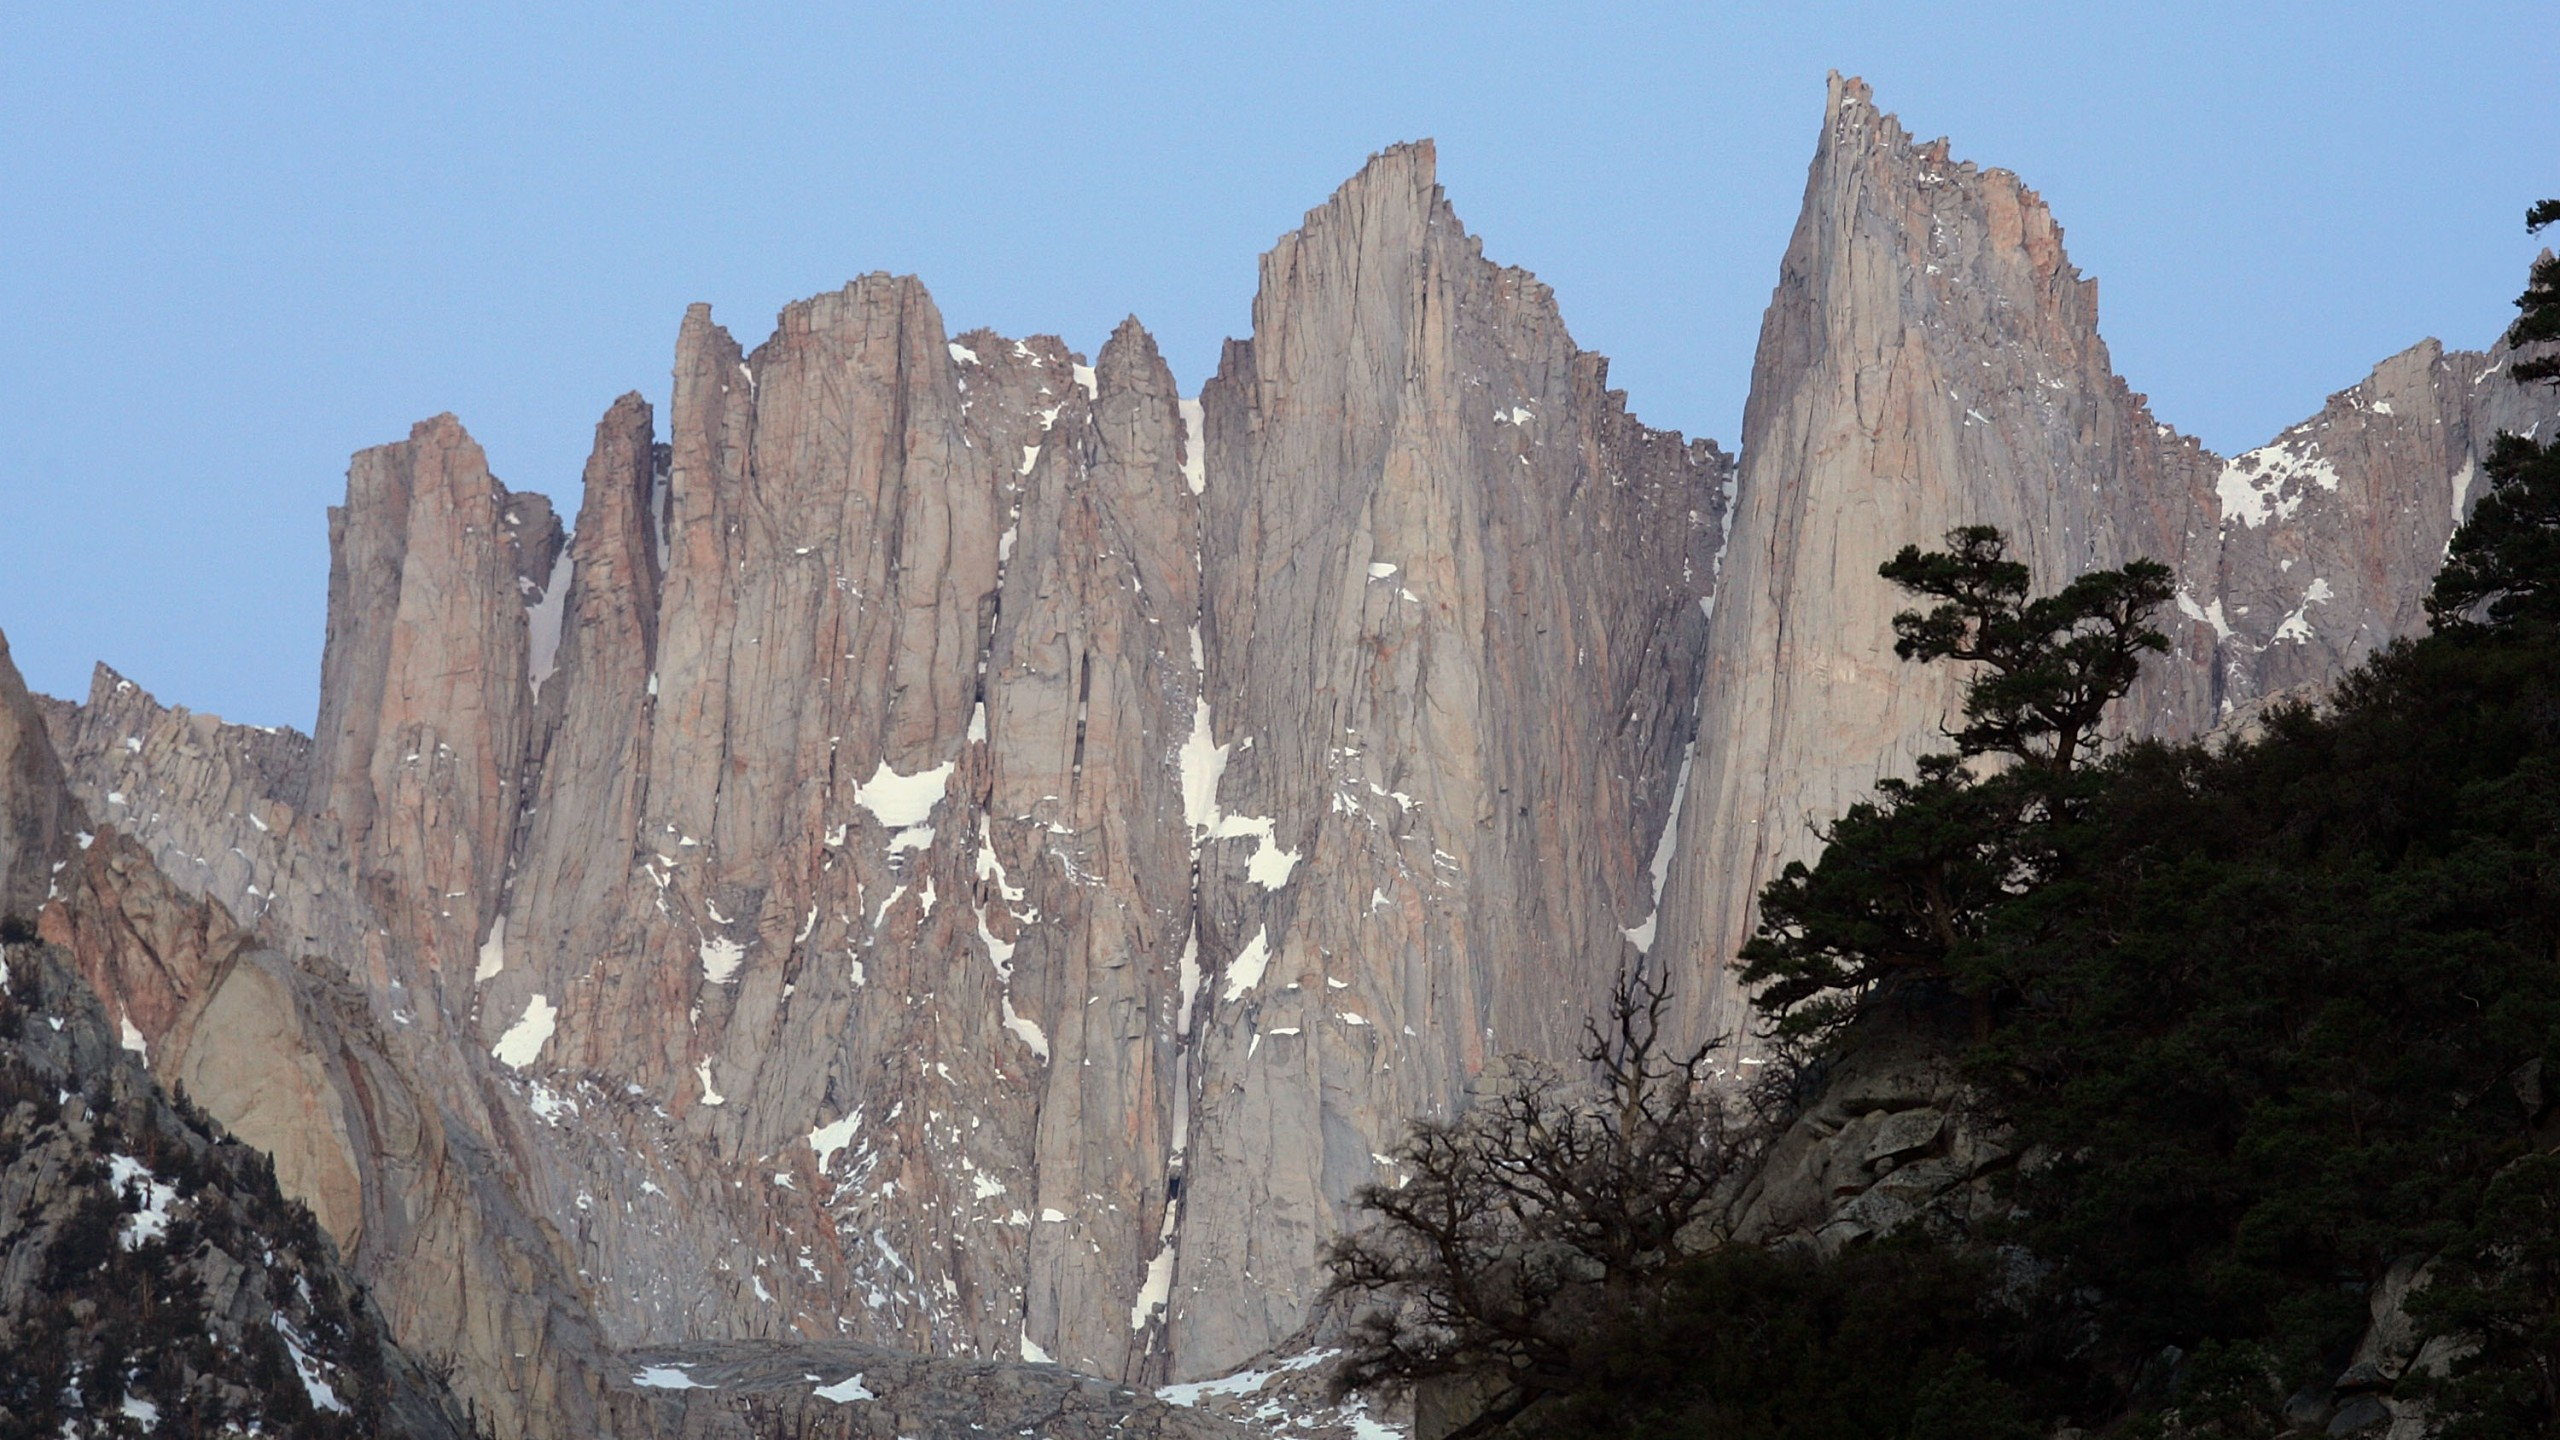 Pinnacles rise from the crest just south of Mount Whitney on May 9, 2008, near Lone Pine, California. (Credit: David McNew/Getty Images)